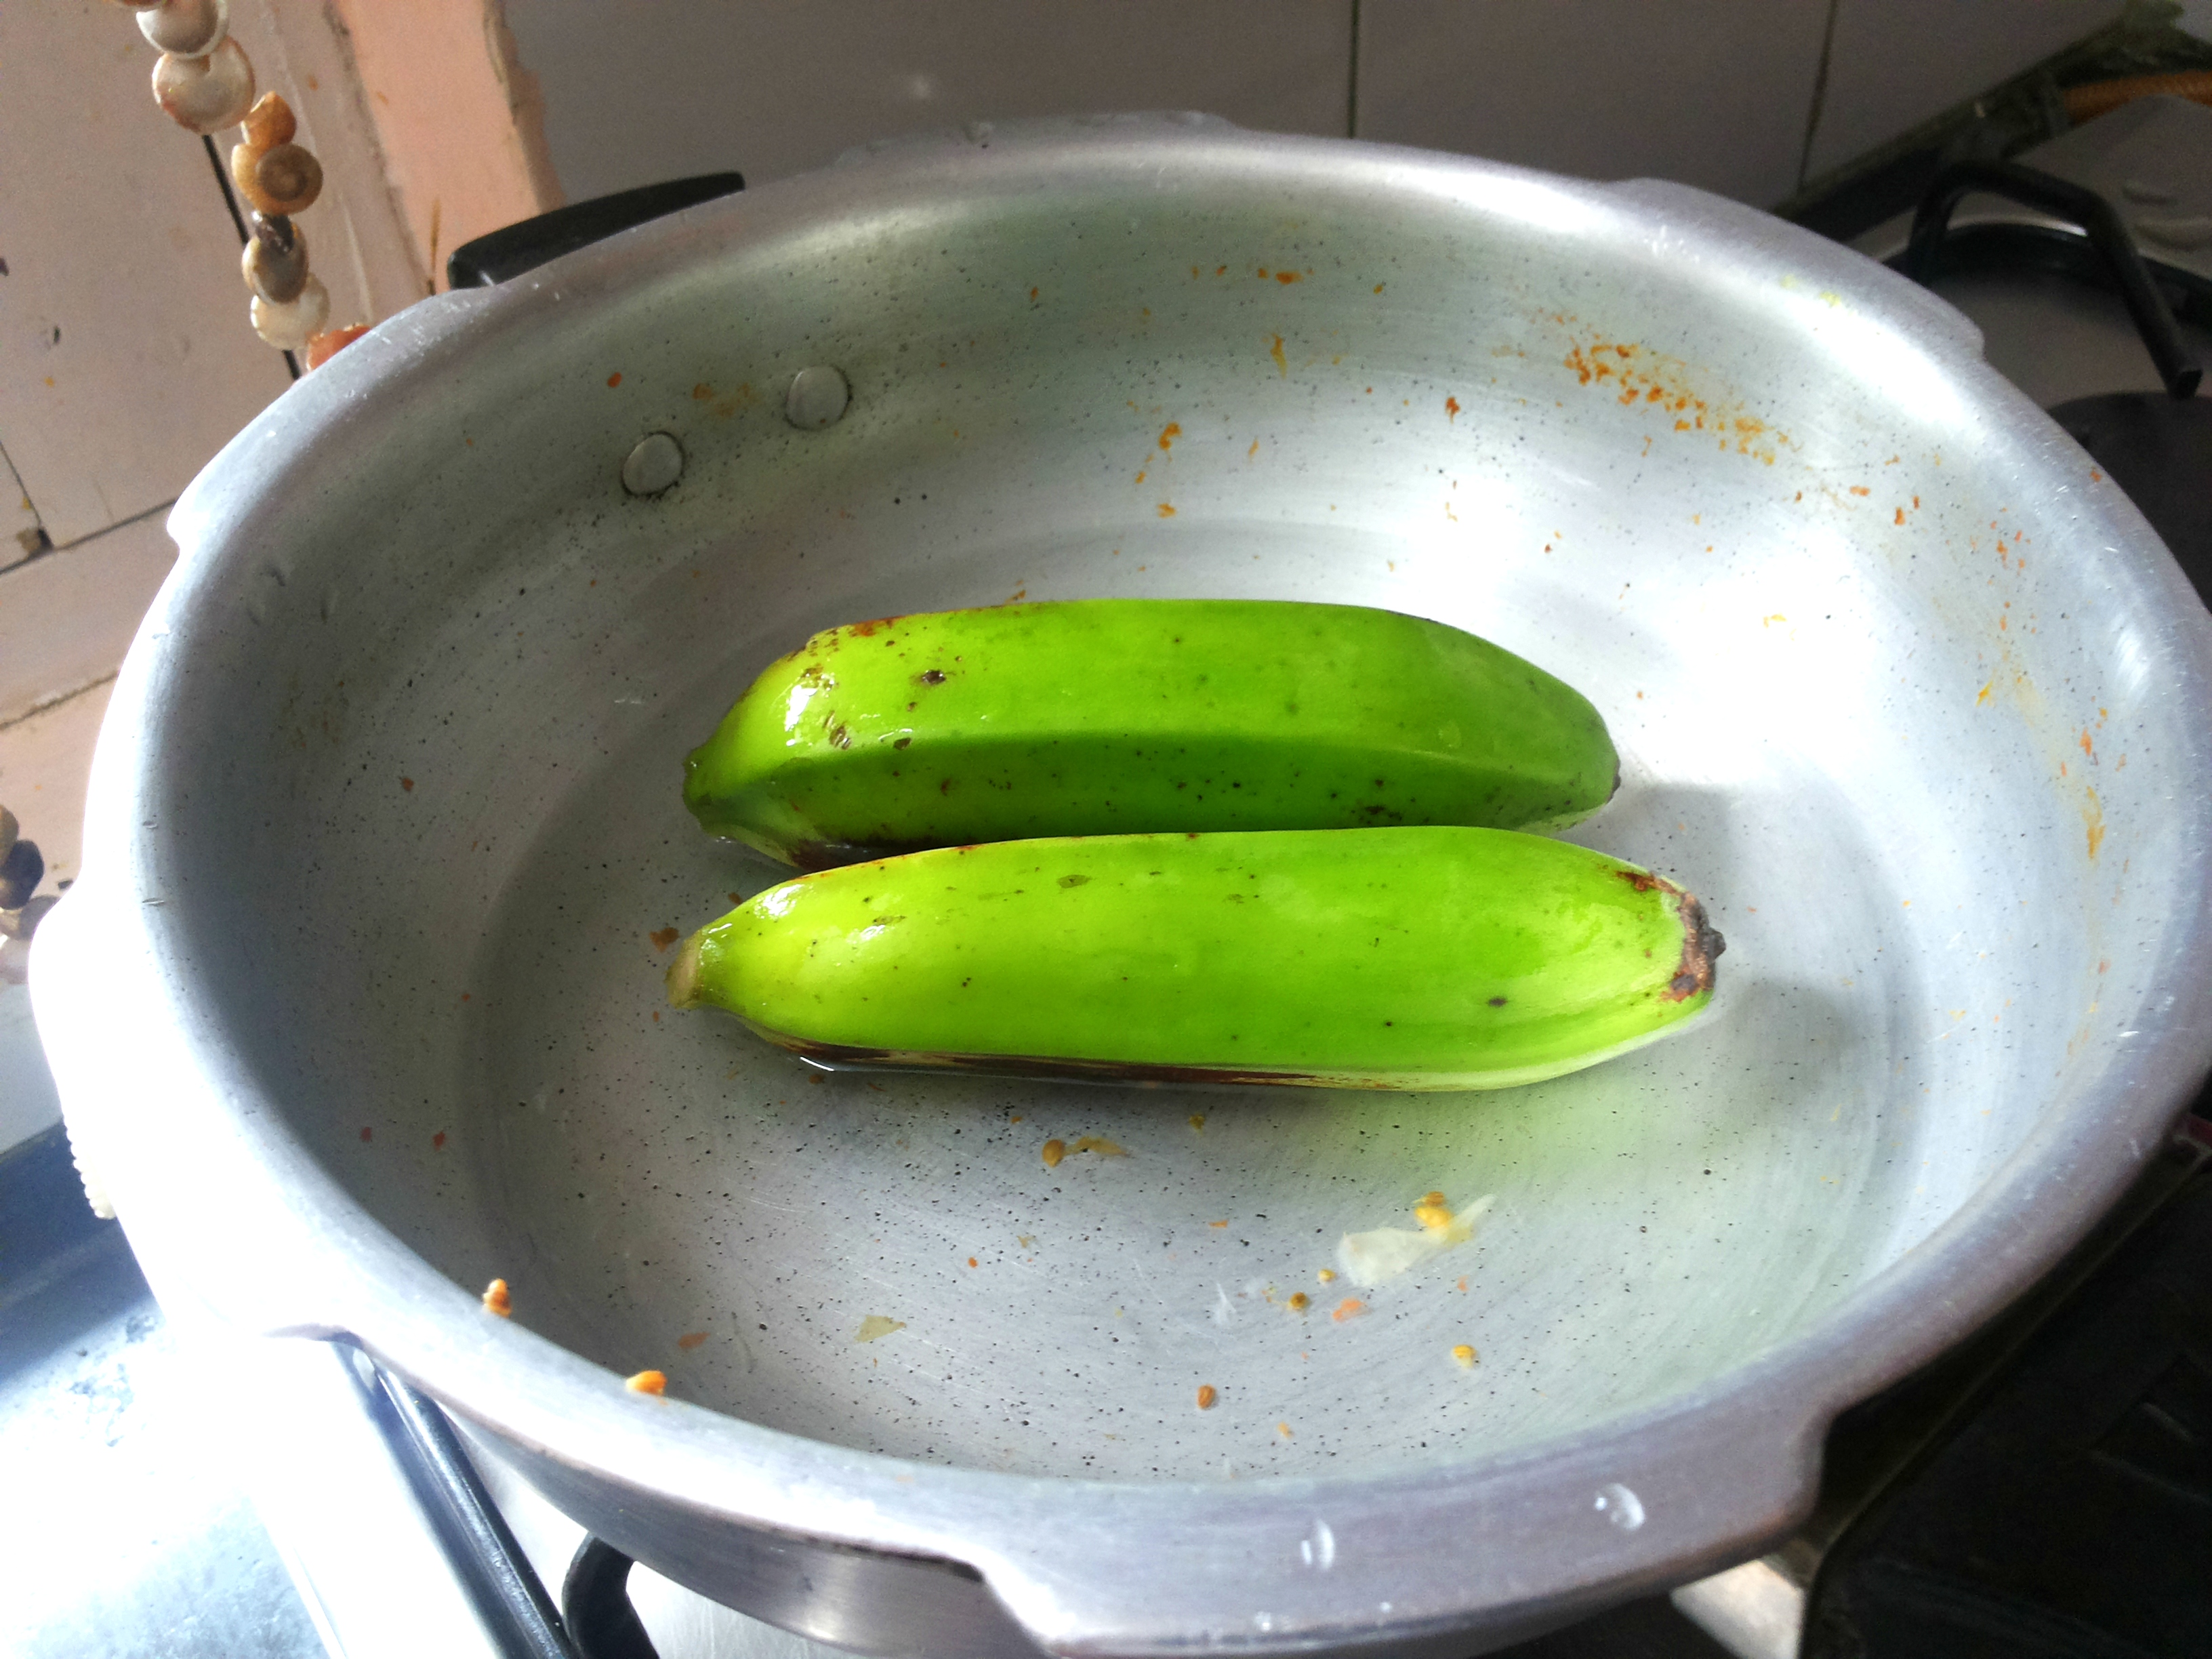 Boil/ microwave the raw banana